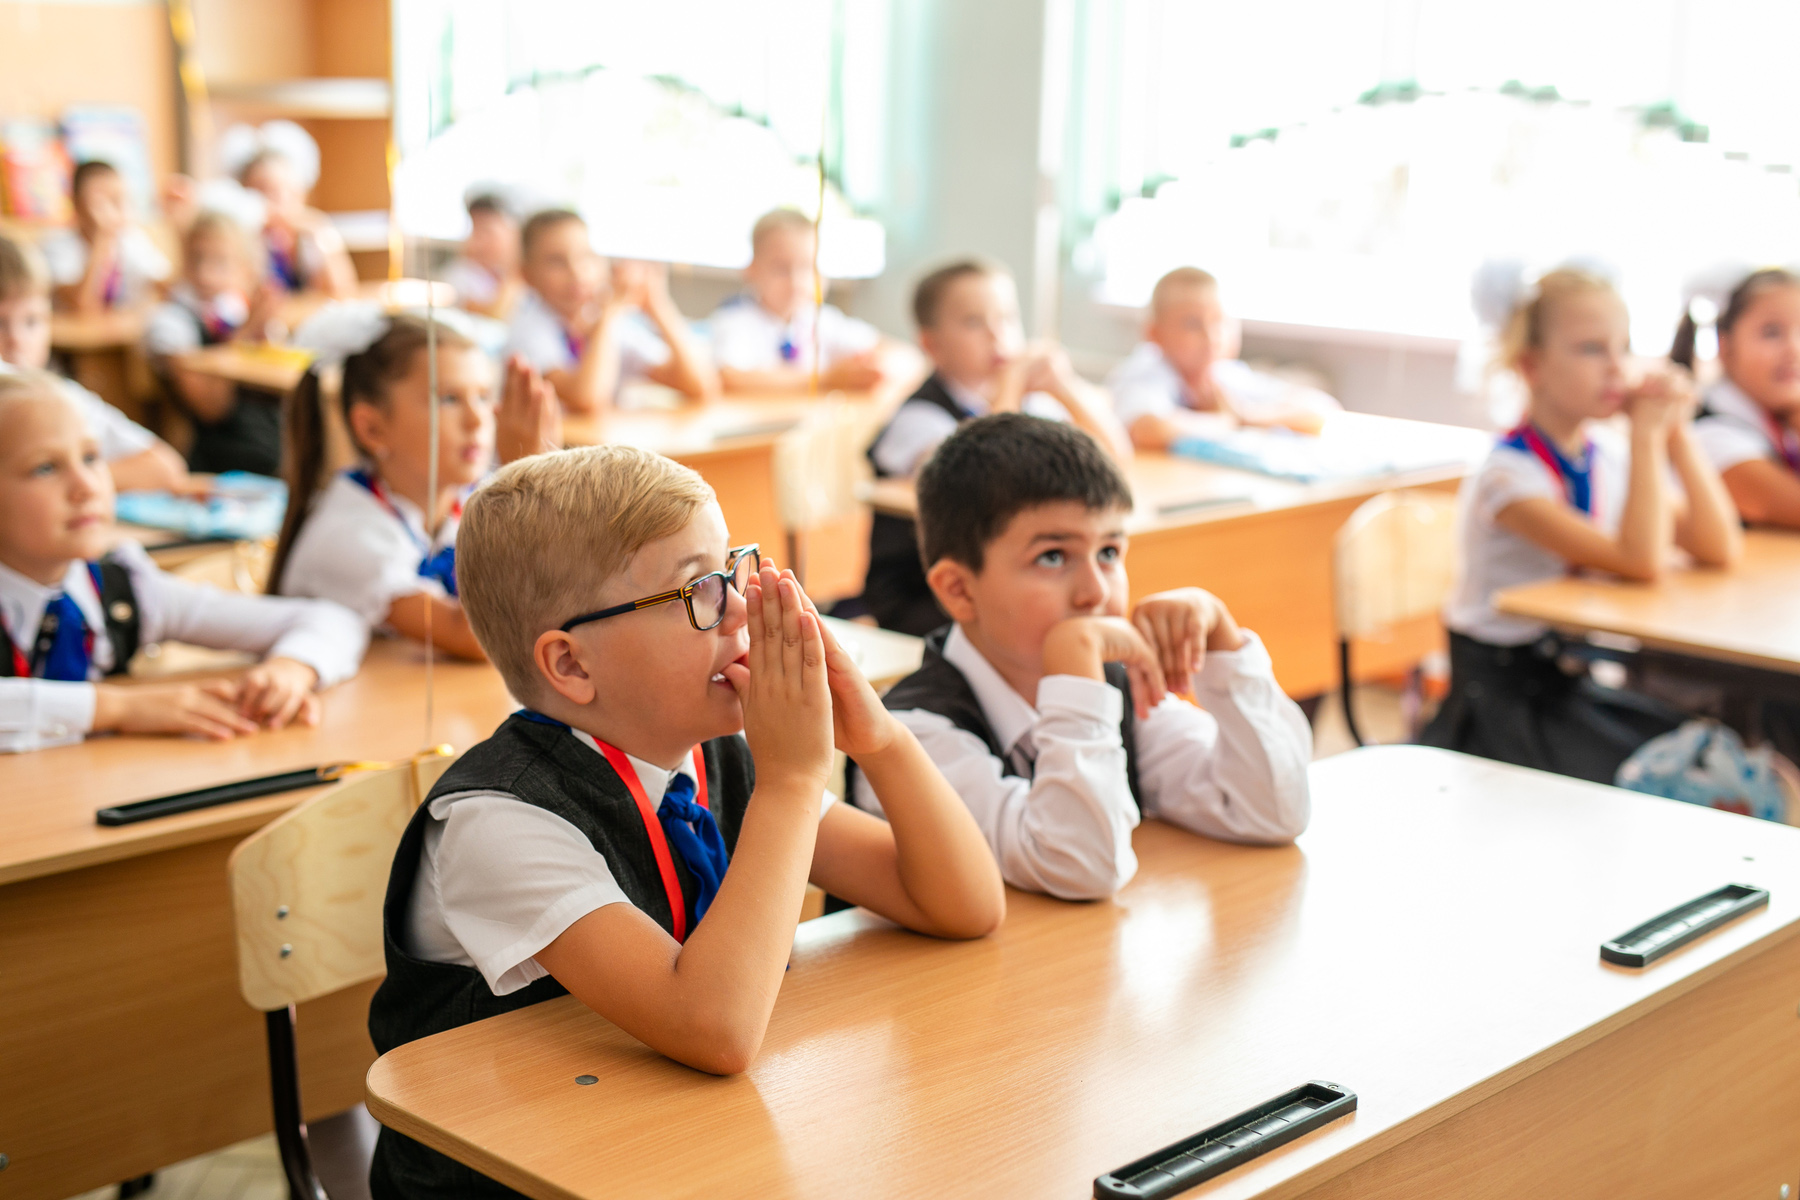 The education system in Russia